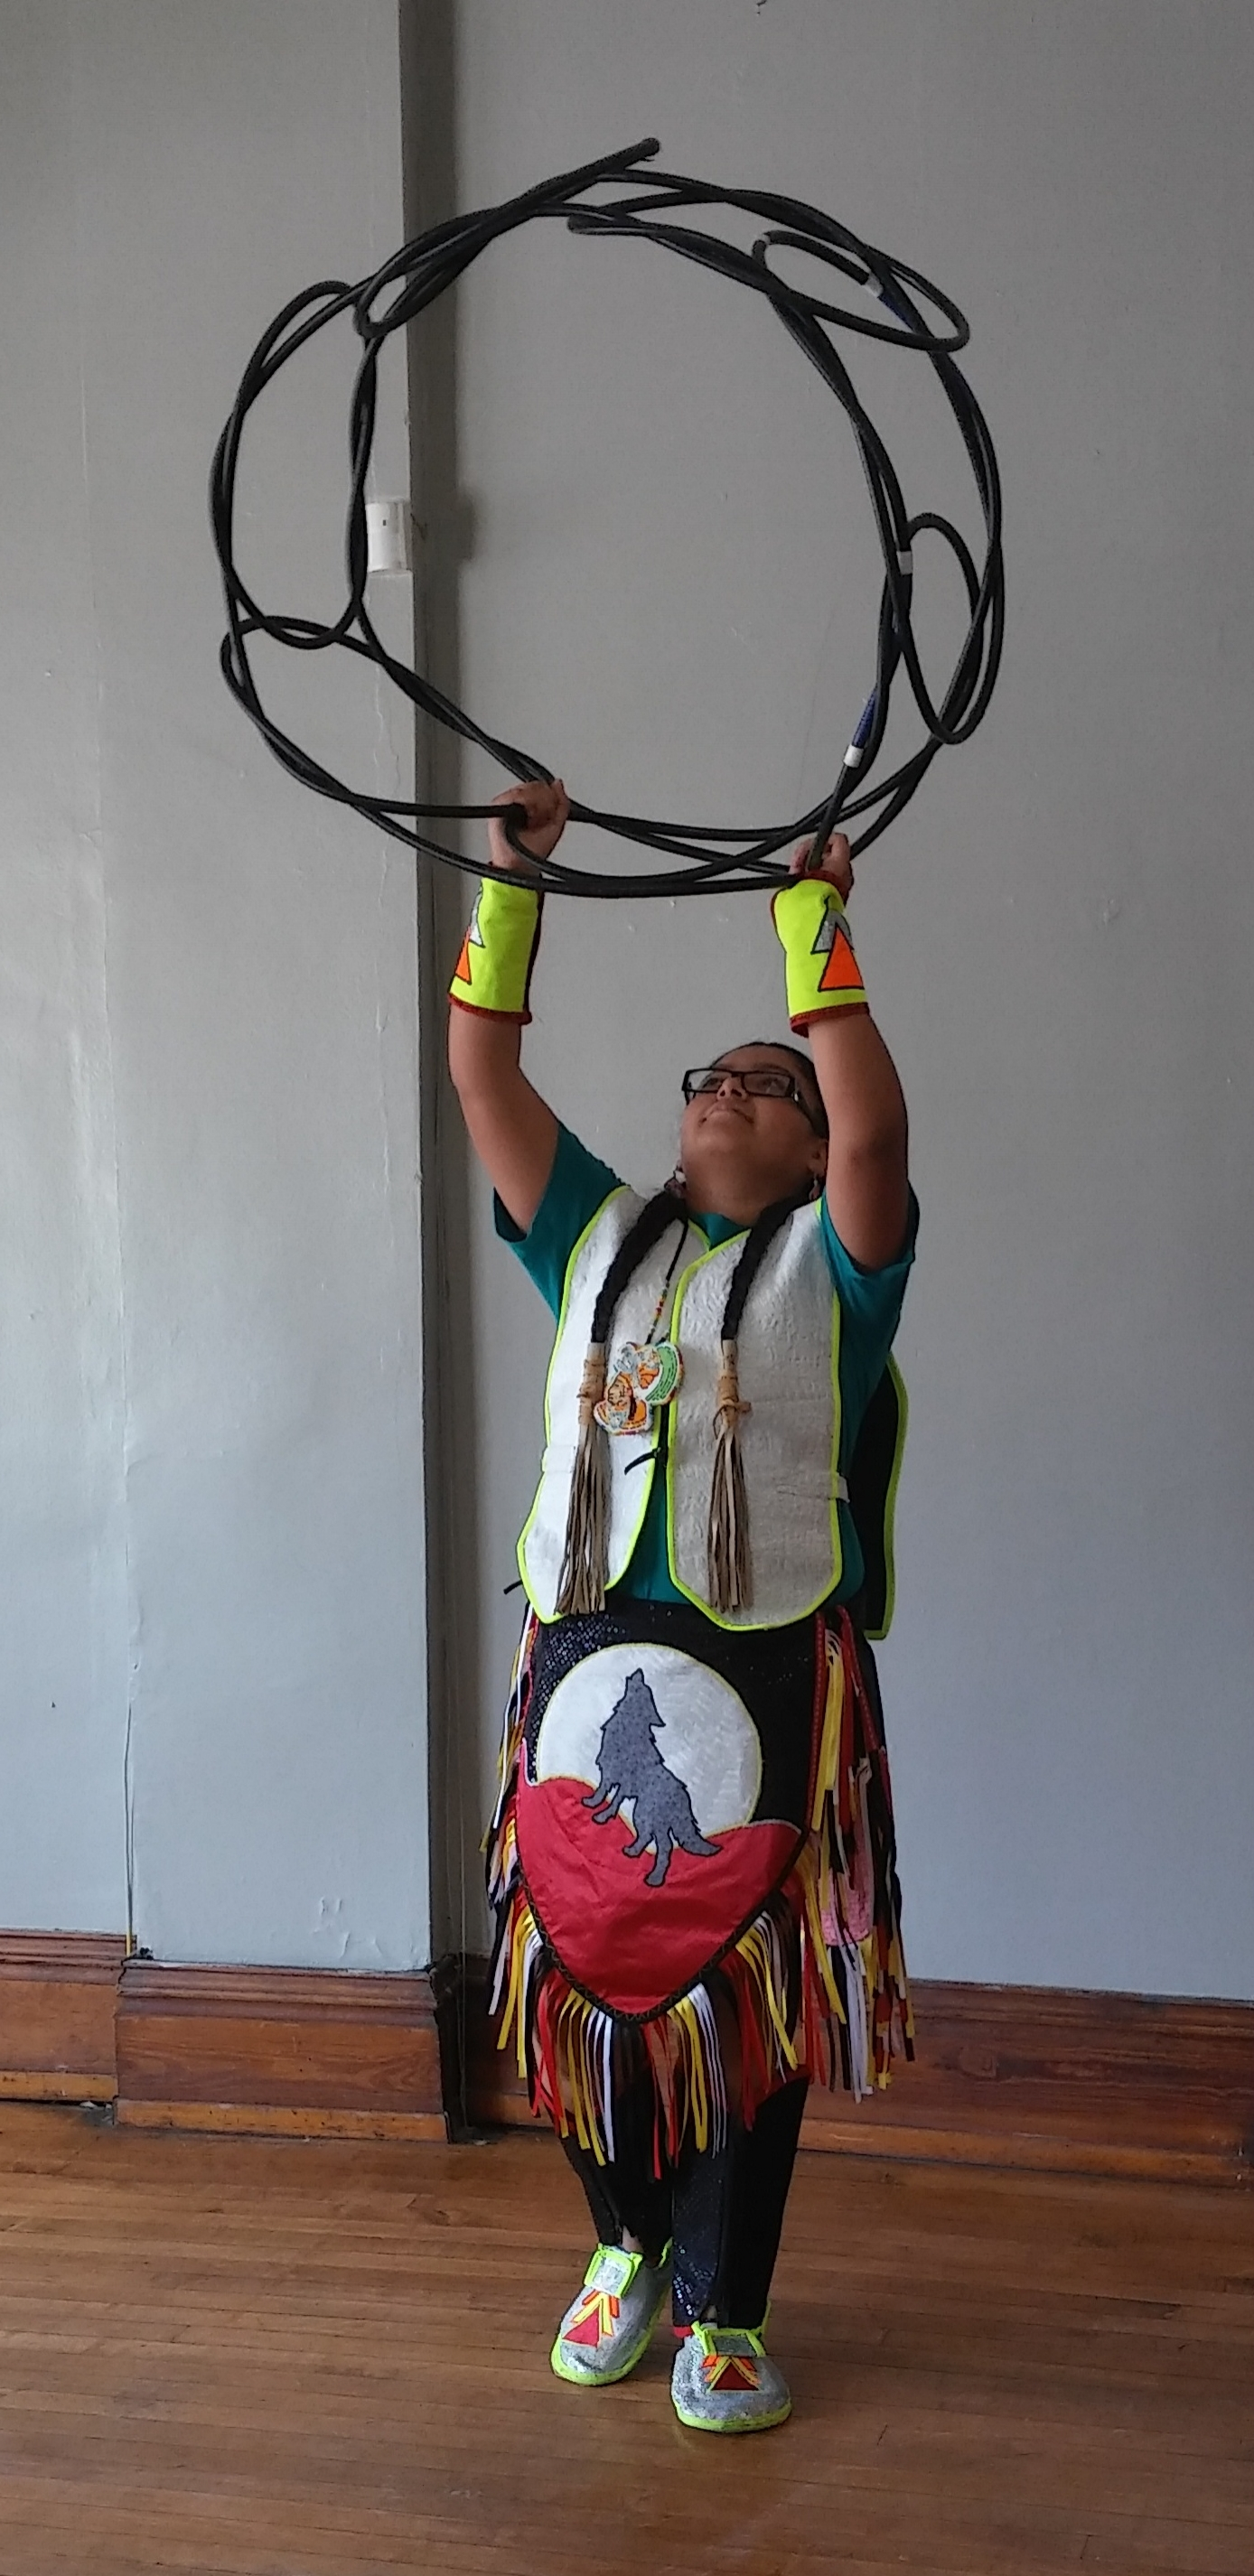 One of our young residents performing a native american hoop dance.